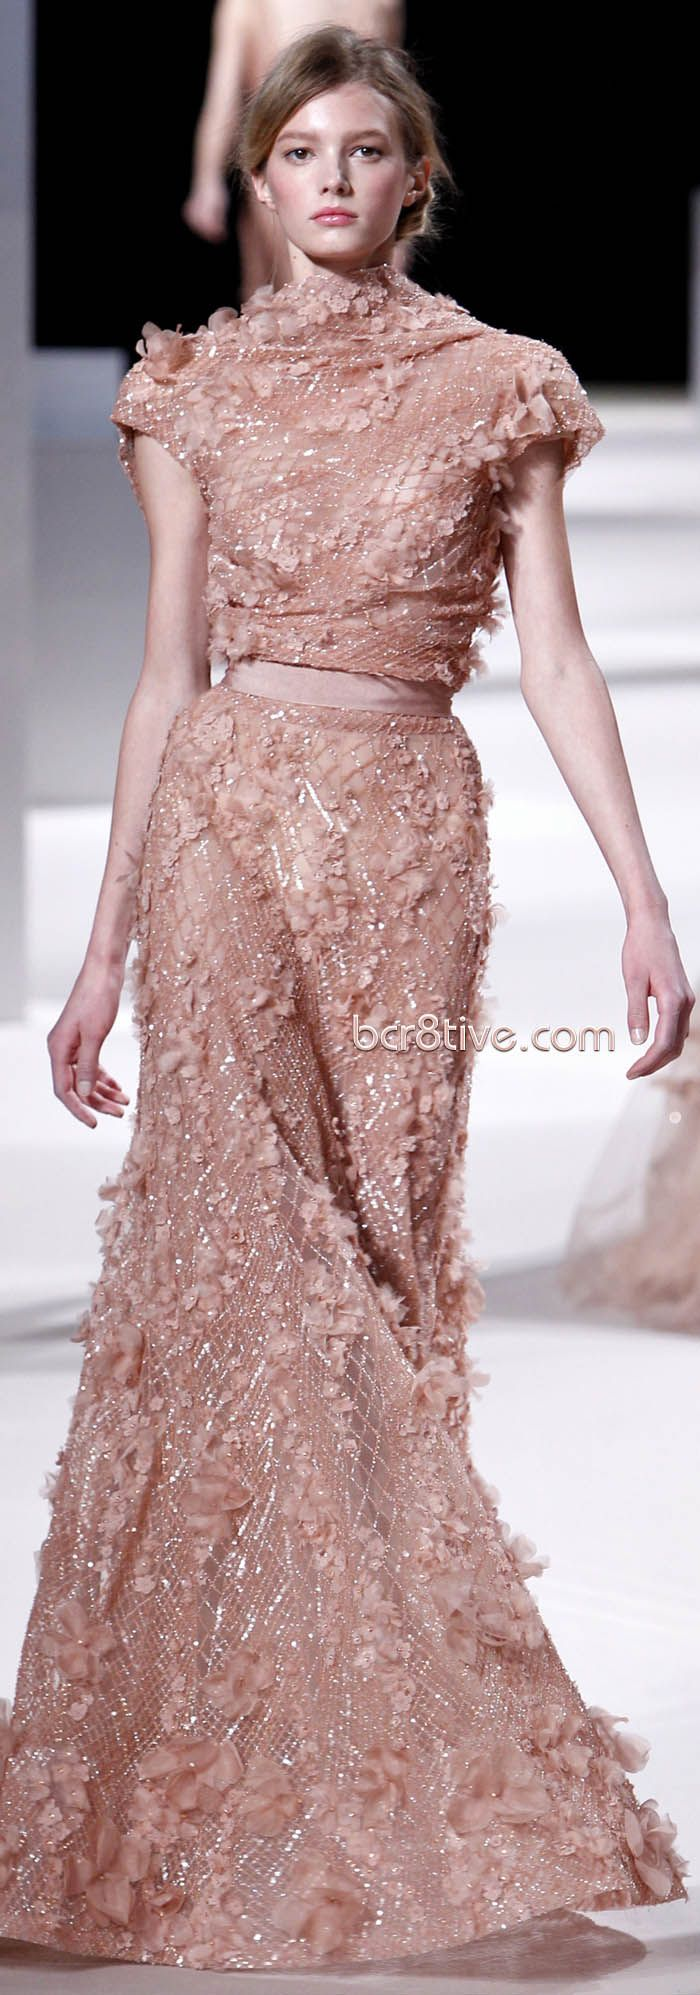 Elie Saab Spring Summer 2011 Haute Couture | Monje, Alta costura y ...